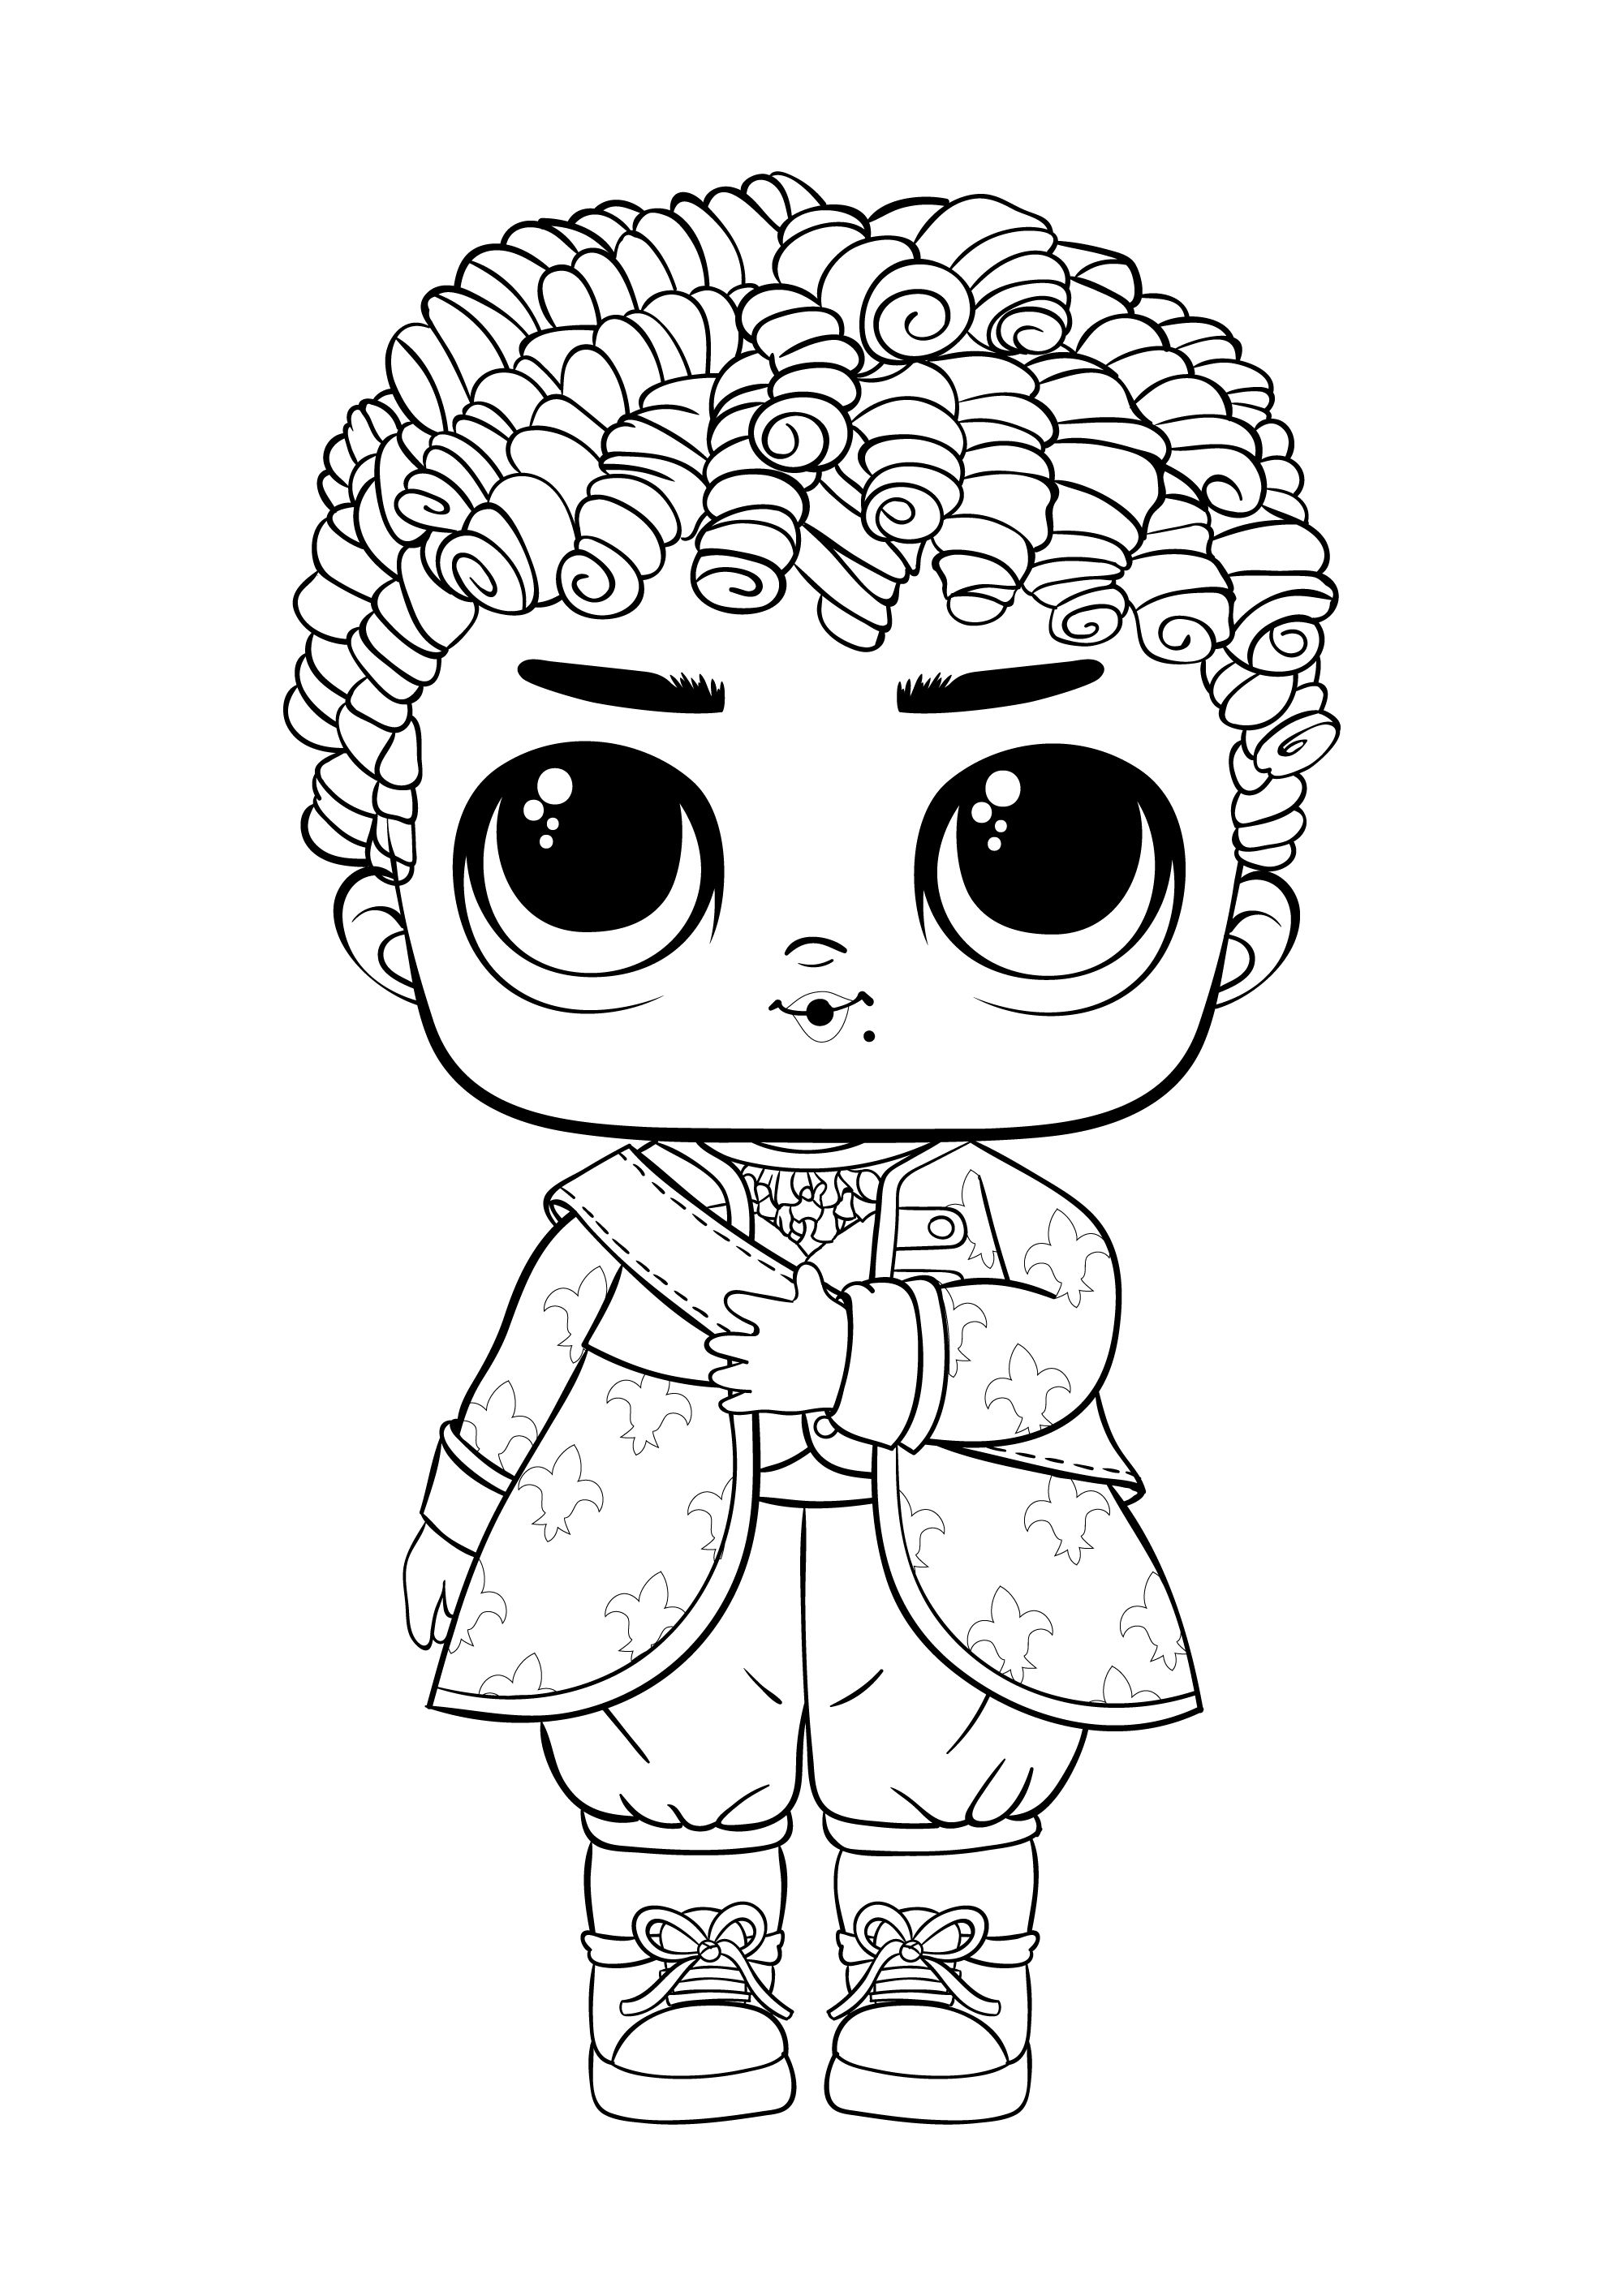 Coloring Pages Lol Surprise Hairgoals And Lol Surprise Boys Lolsdolls Coloring Pages For Boys Lol Dolls Cute Coloring Pages